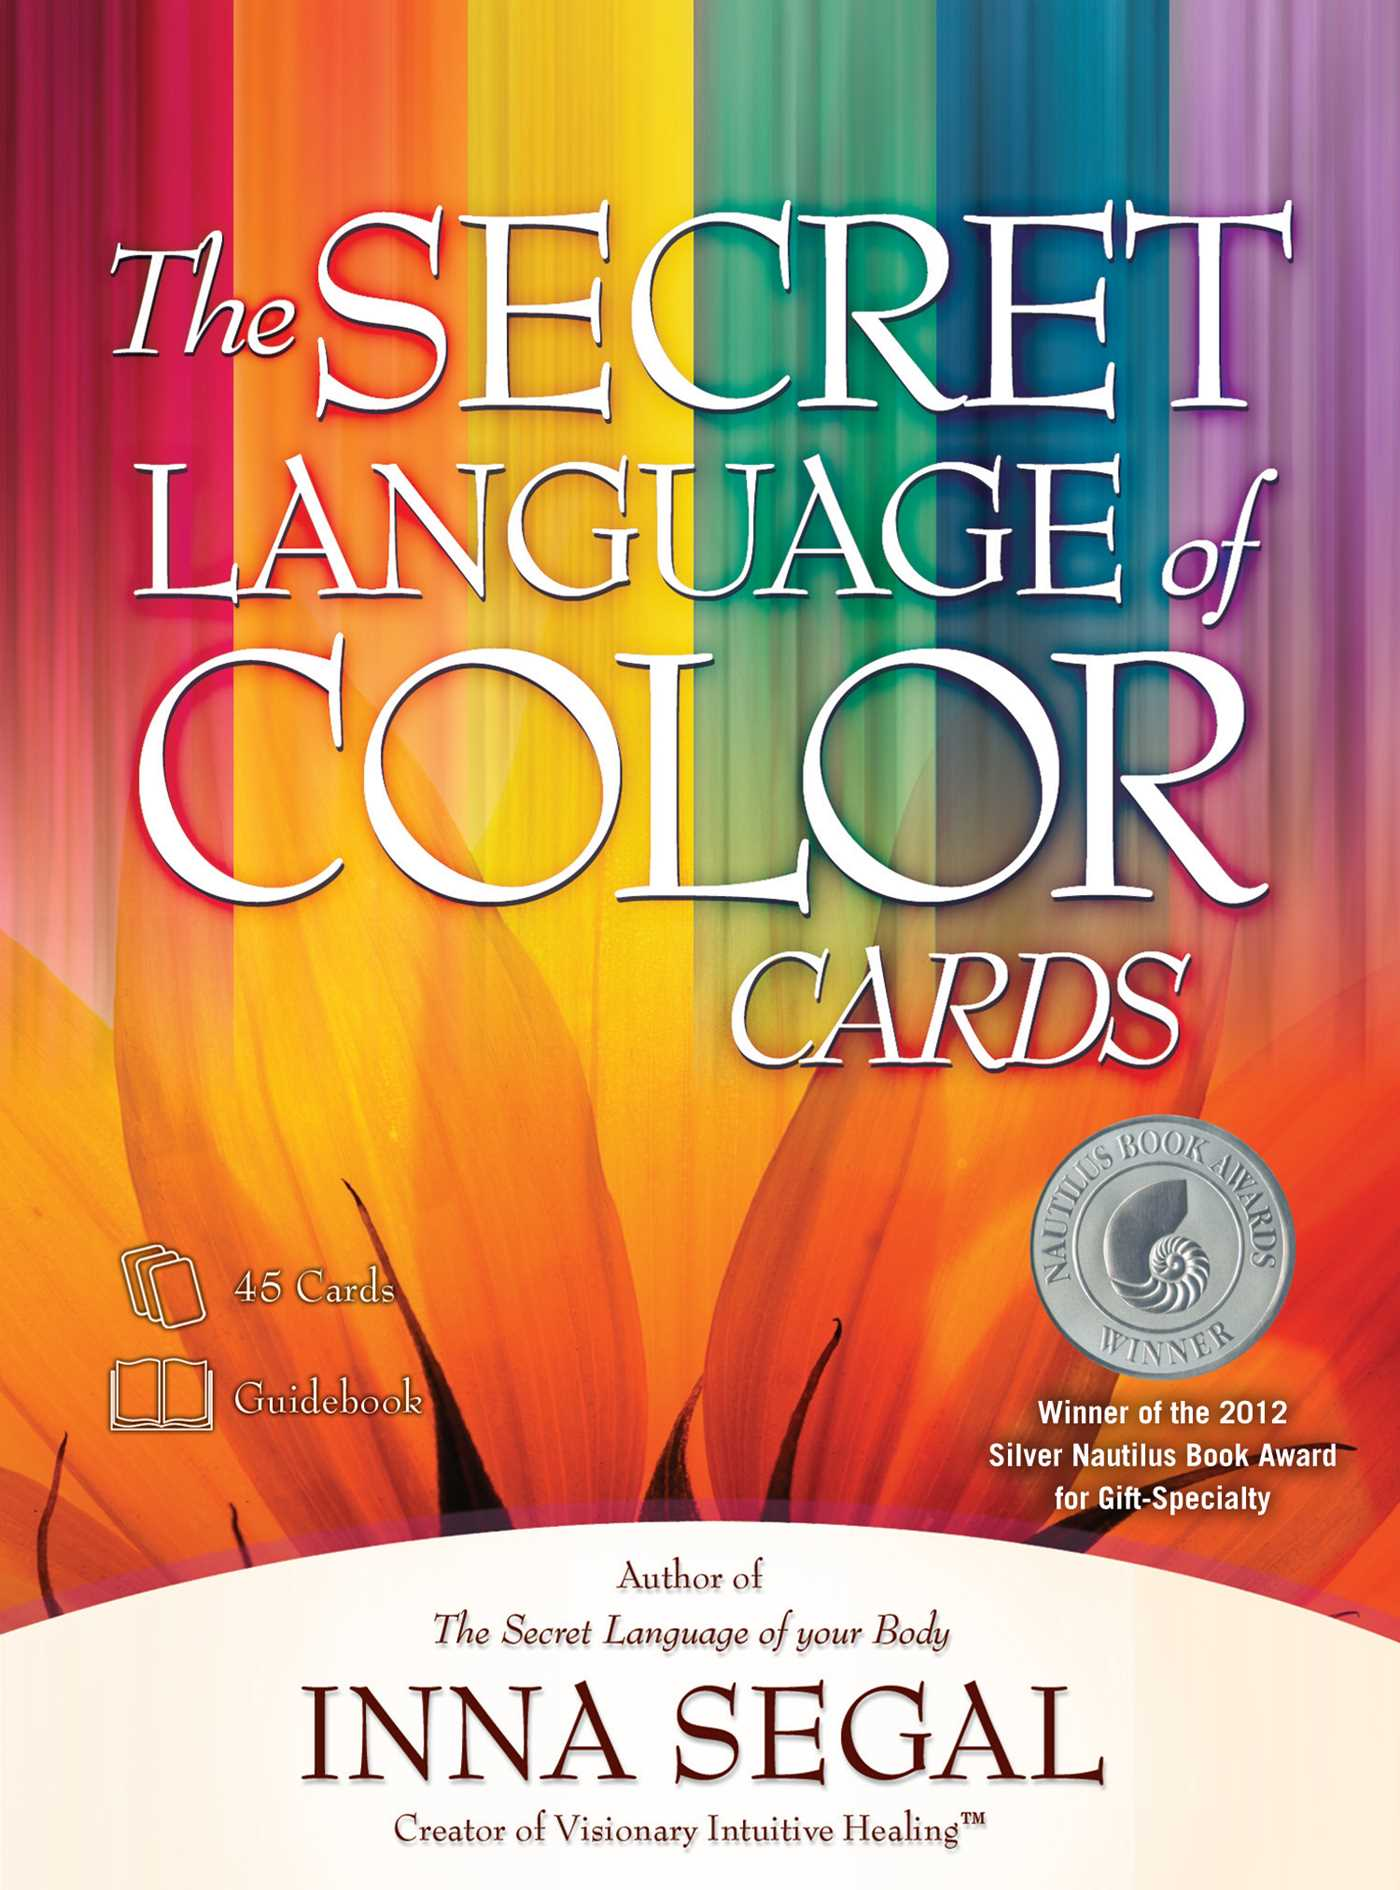 The secret language of color ebook 9781451657401 hr